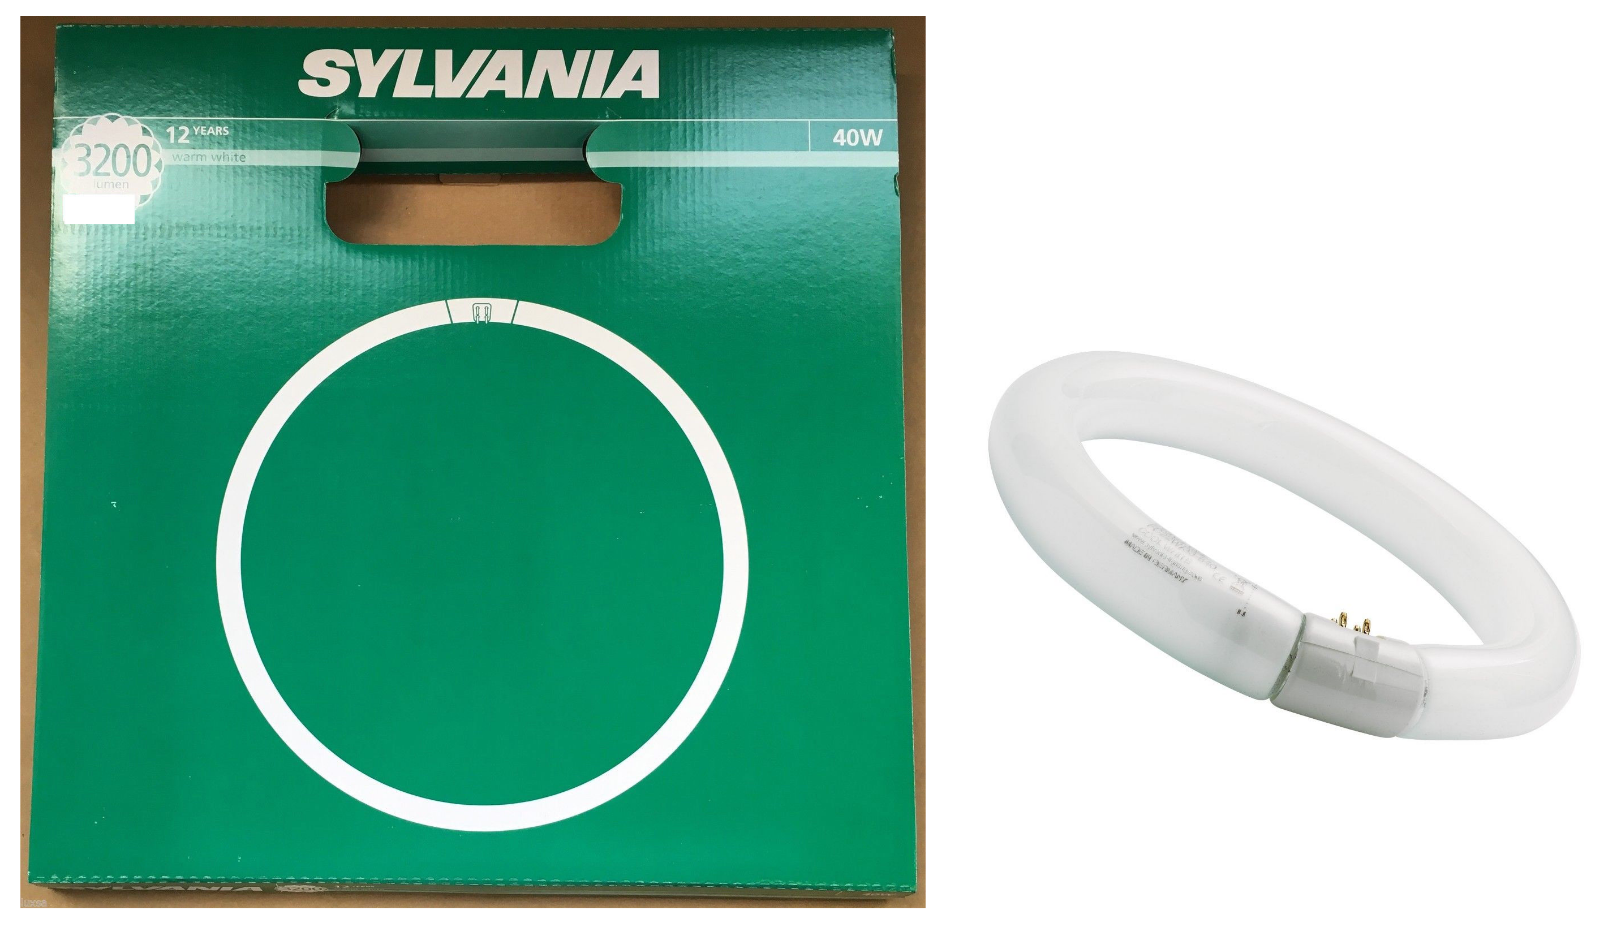 32w Circulaire Cool Chaud T9 40w Fluorescent Sylvania Jour 22 Blanc Rond W Tube RcS3L54Ajq